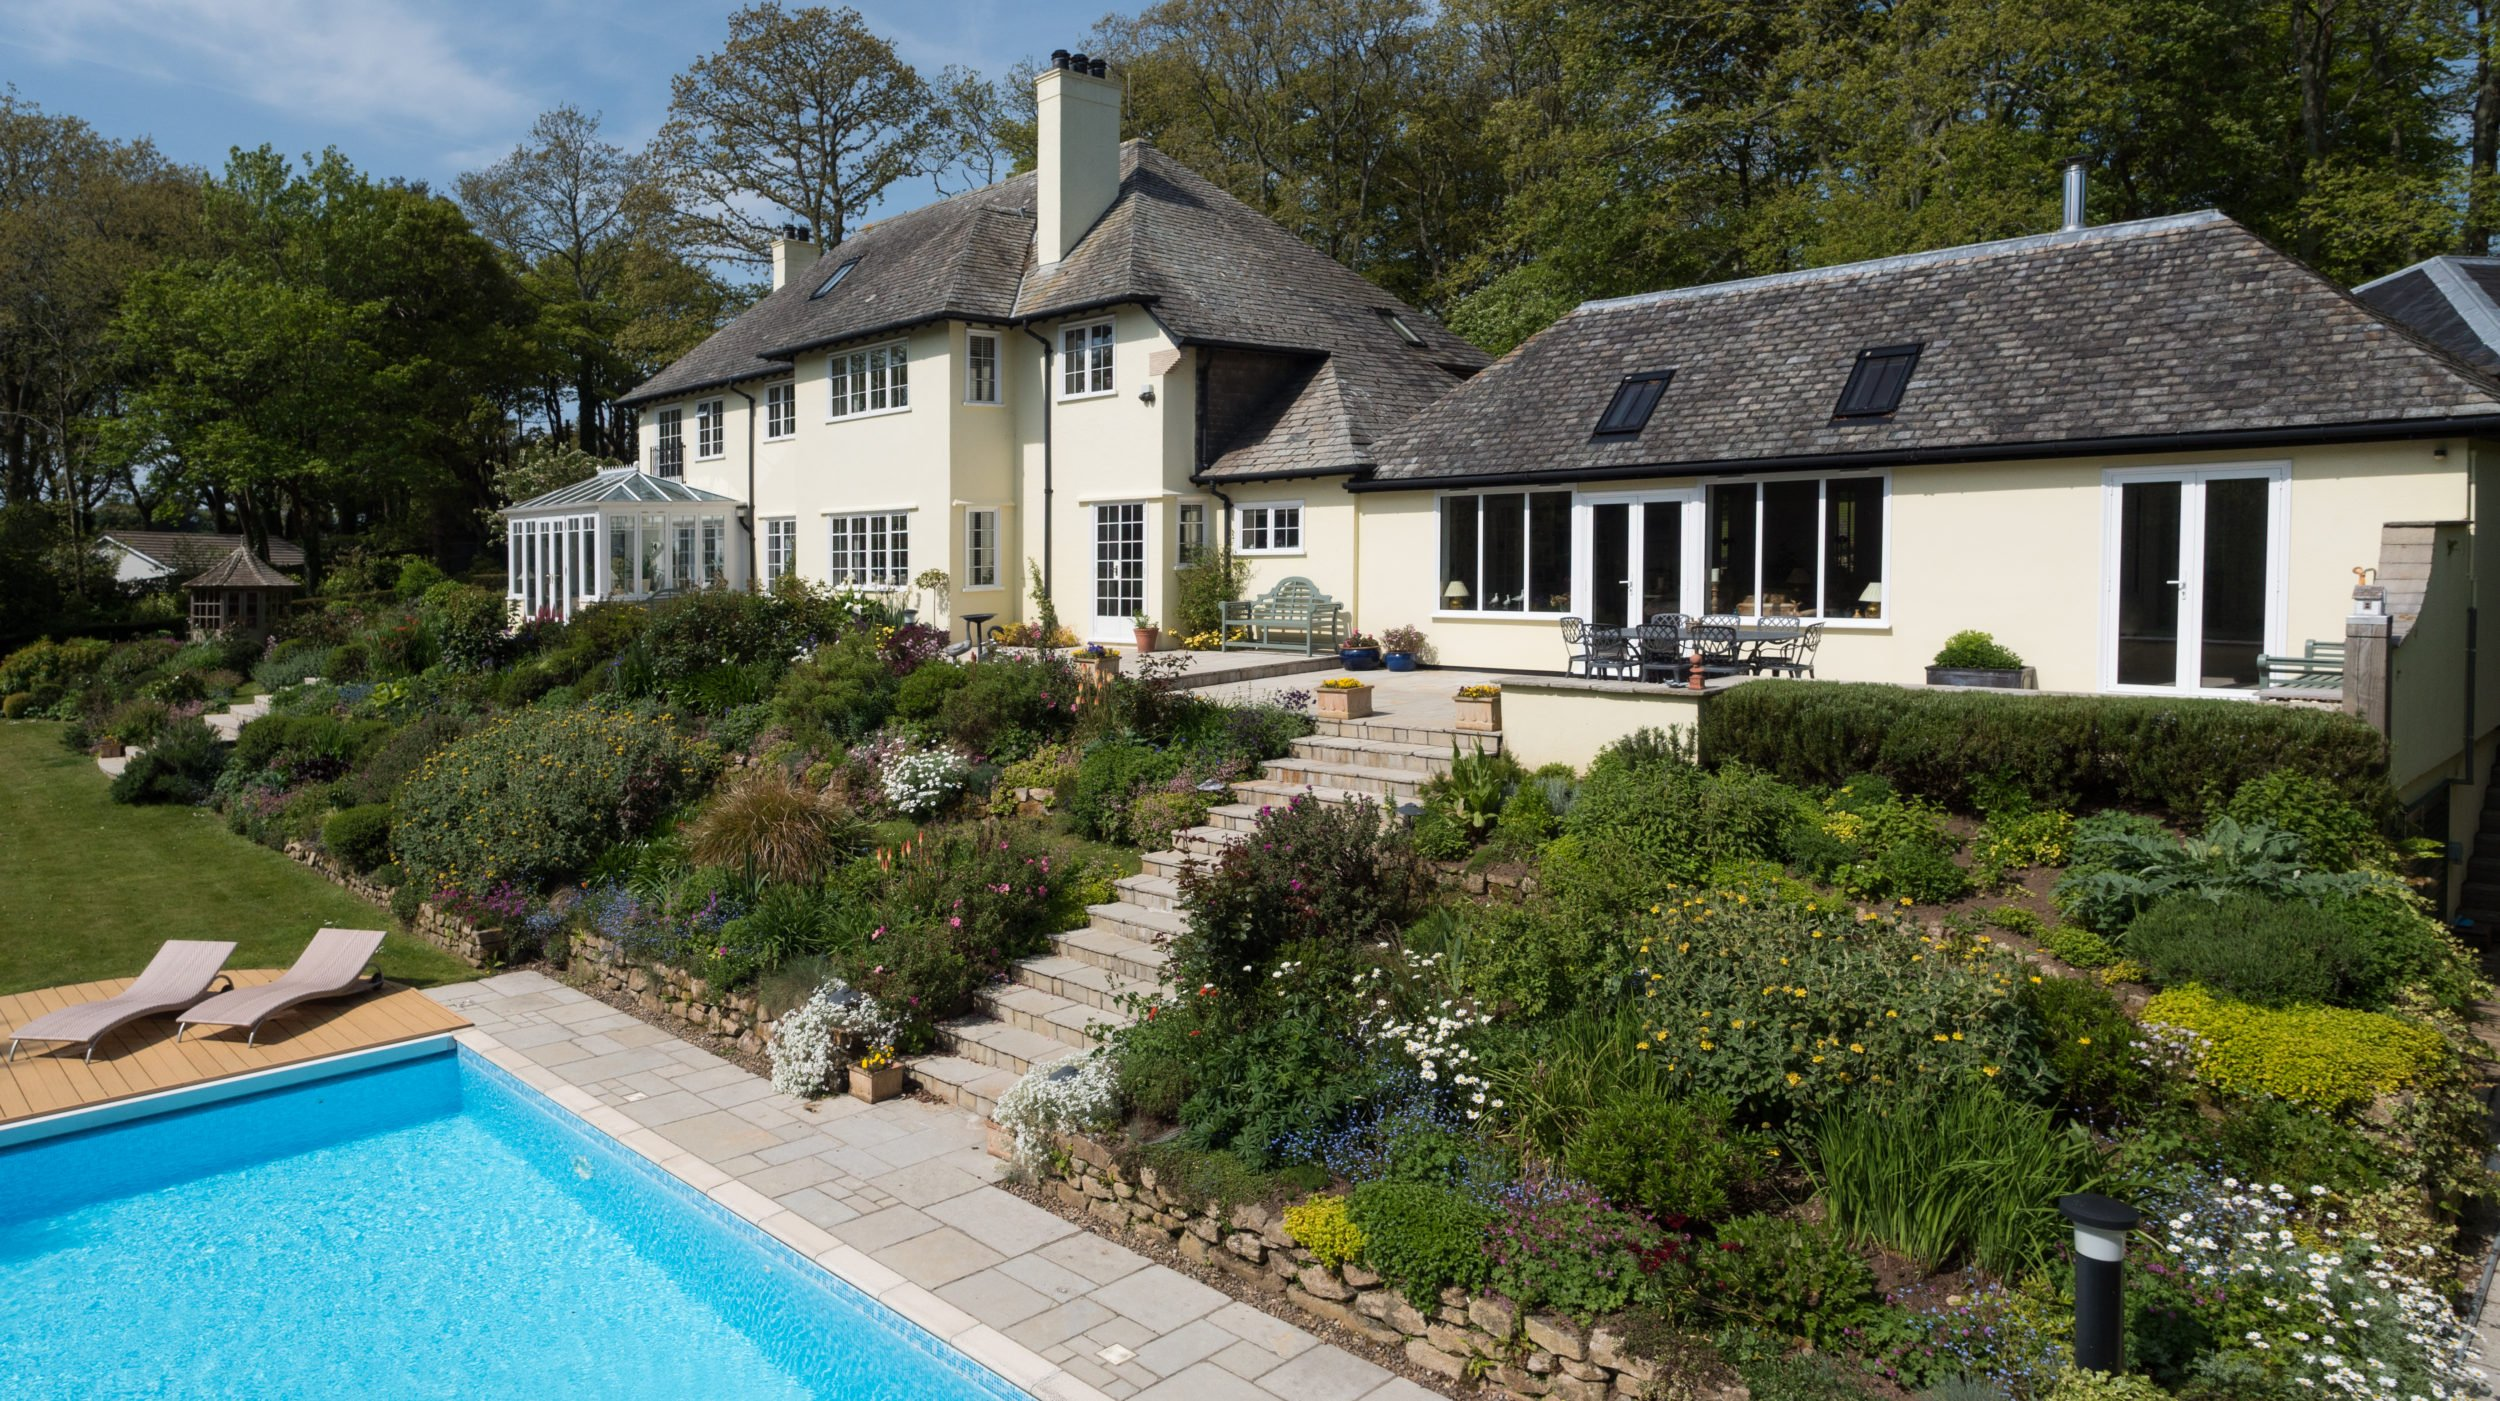 Dorne video and photography being used for an estate agent in Cornwall